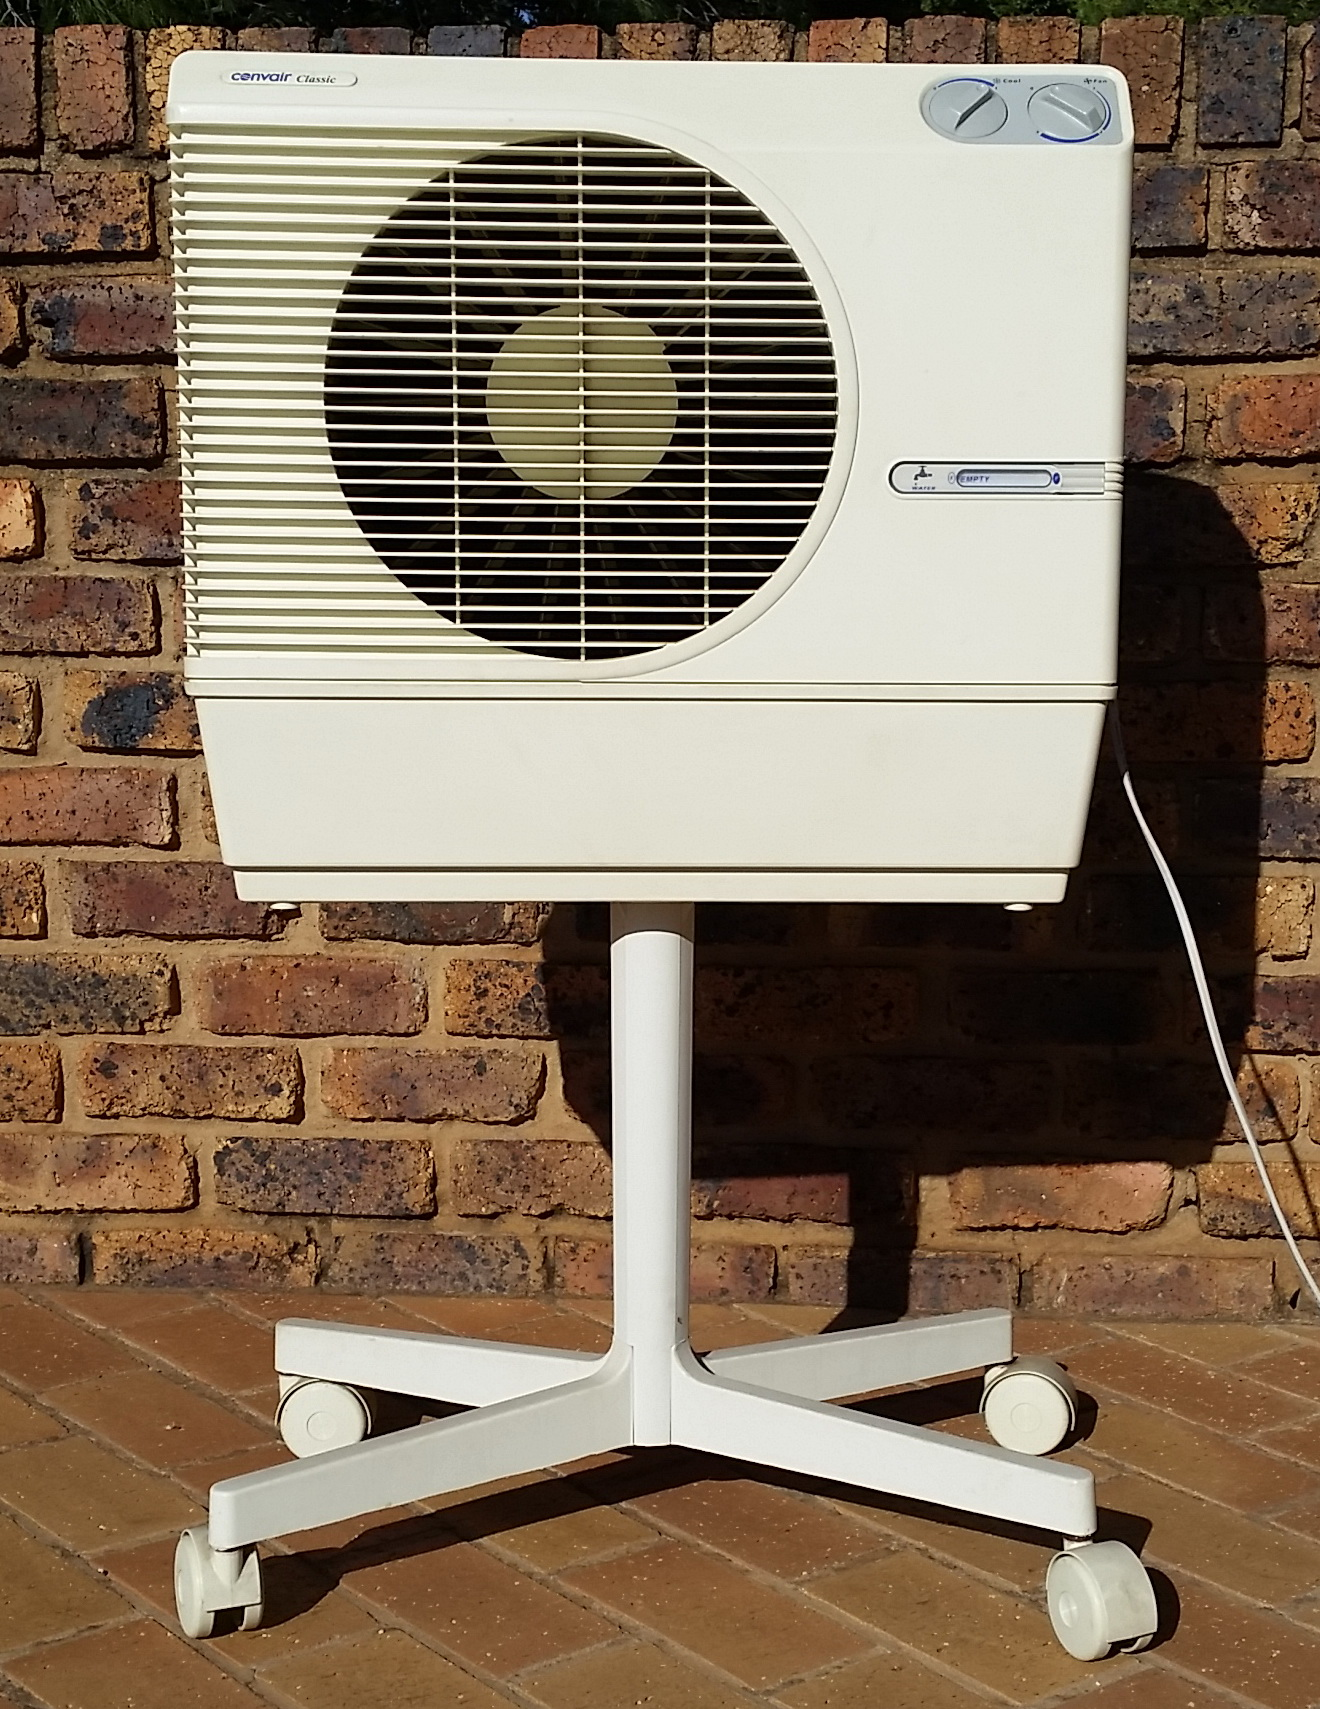 AIRCONDITIONER- Portable water evaporation air conditioner with 3 speed fan.